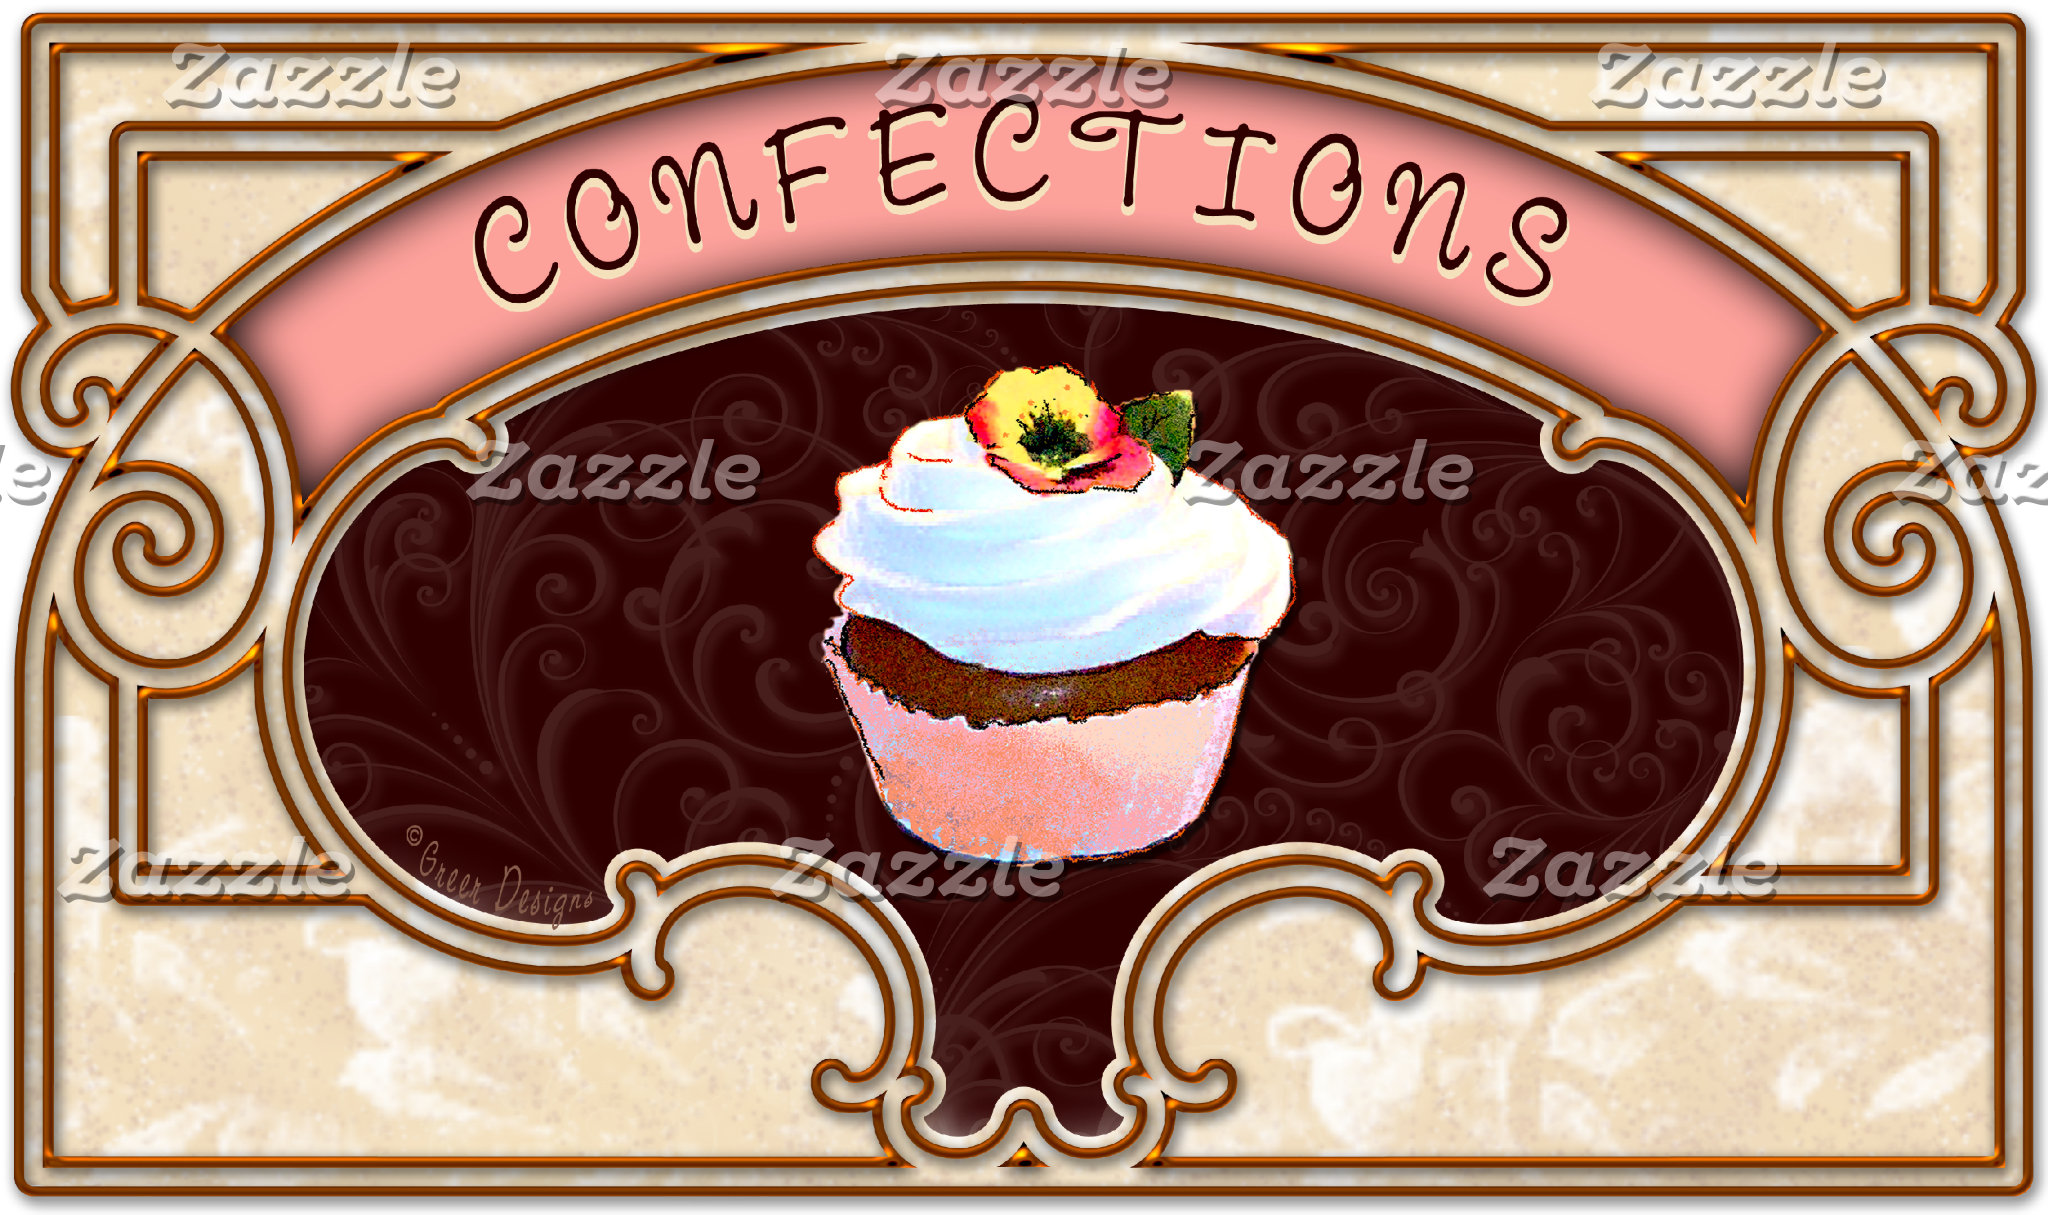 Confection Cupcake Vintage Sign